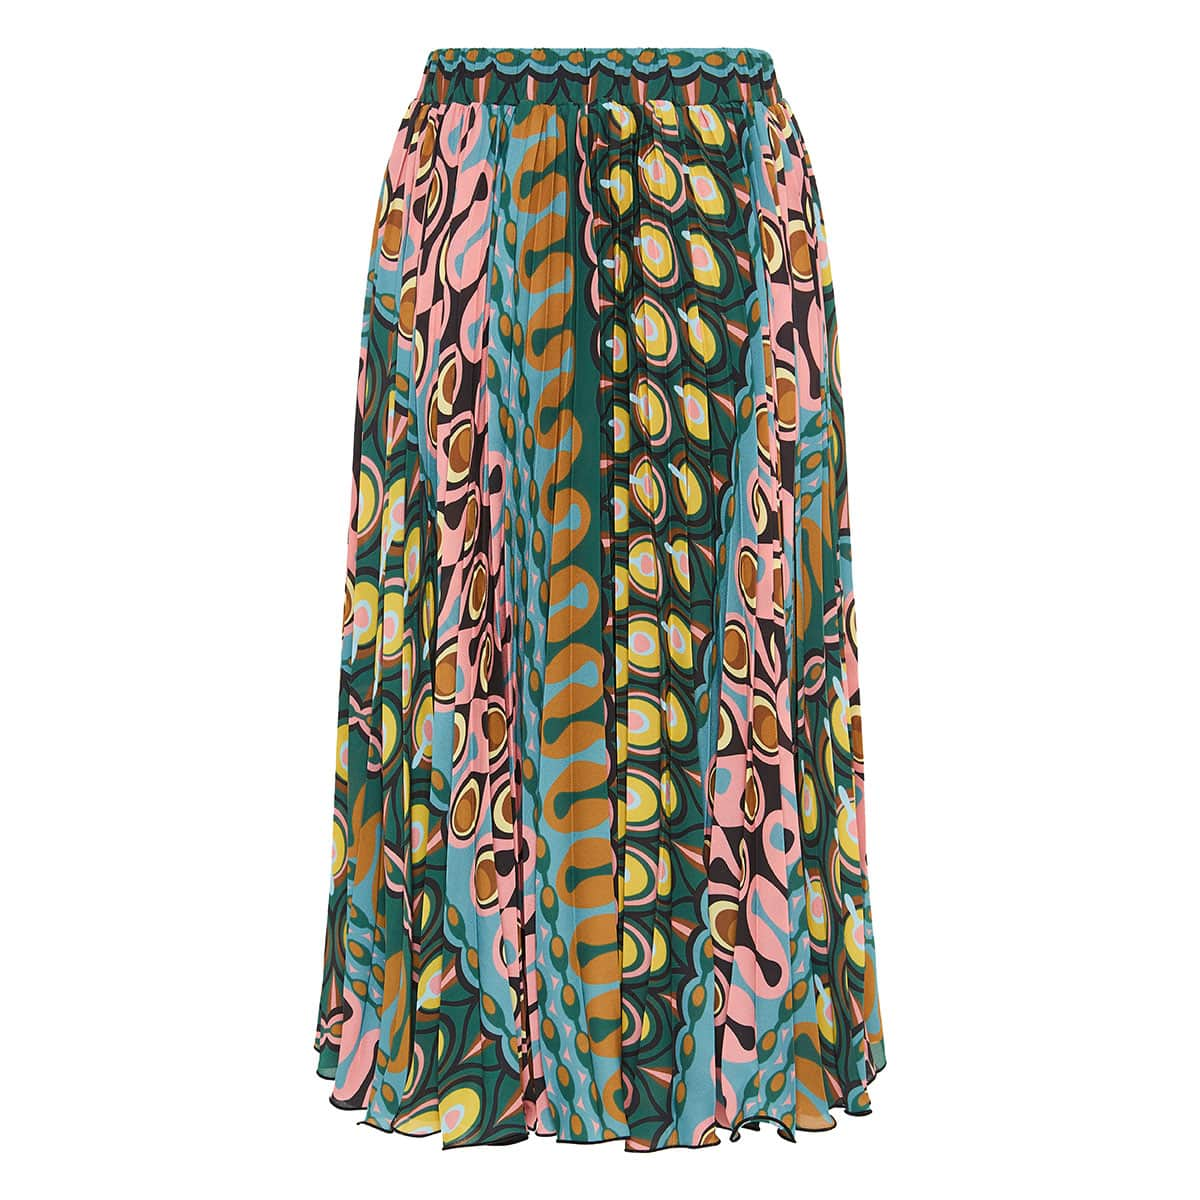 Soleil printed pleated skirt